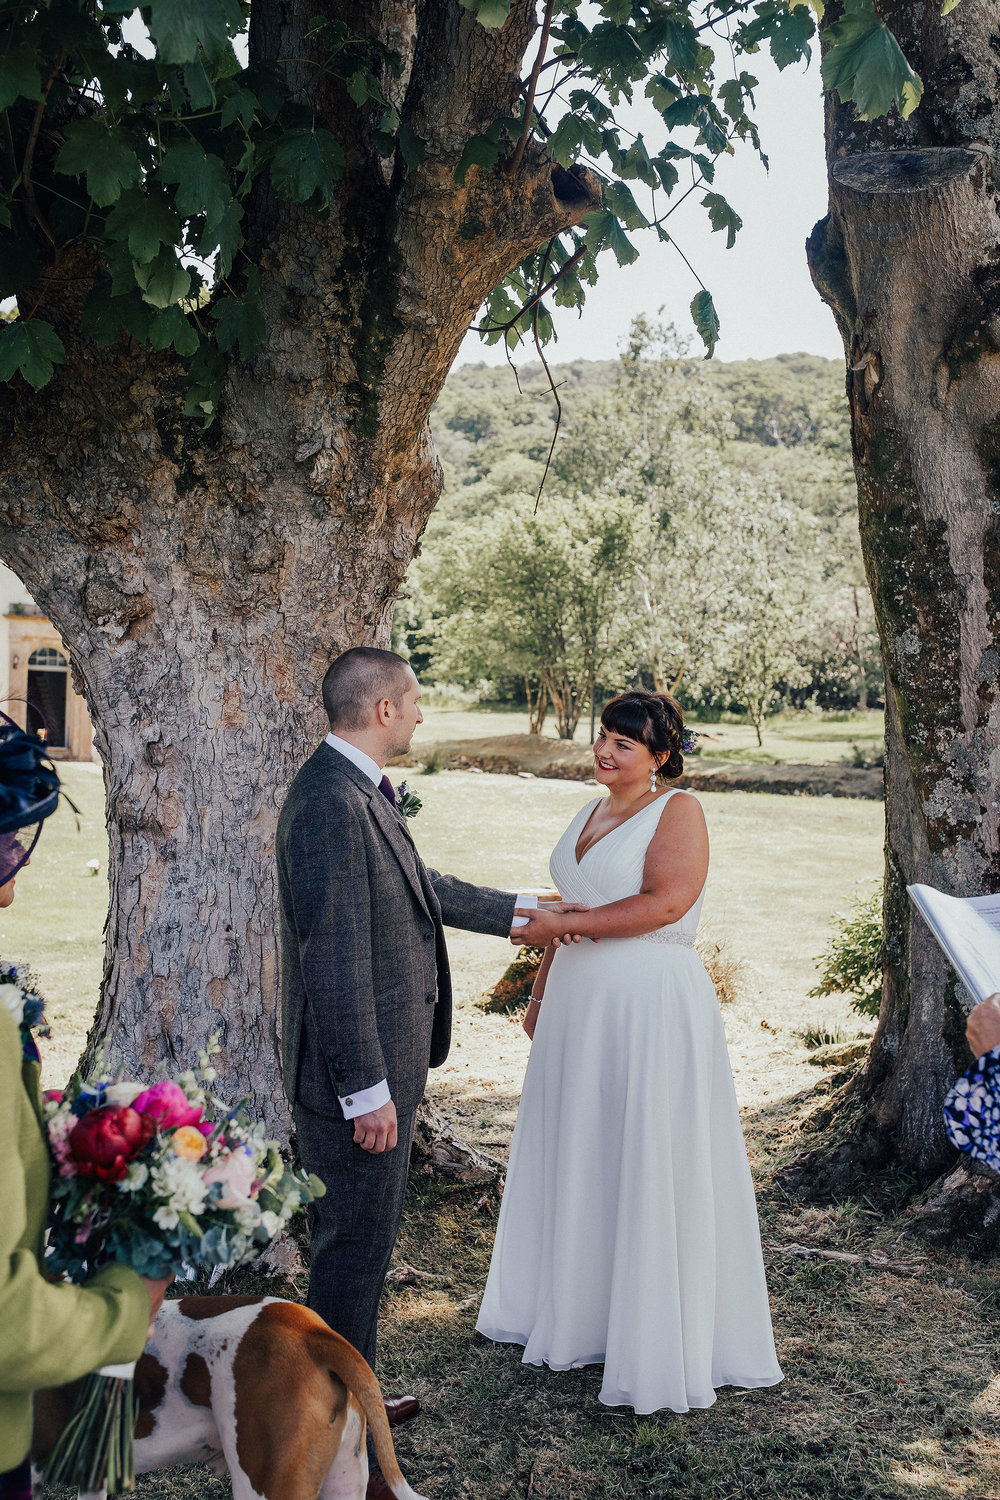 SCOTTISH_ELOPEMENT_PHOTOGRAPHER_PJ_PHILLIPS_PHOTOGRAPHY_56.jpg